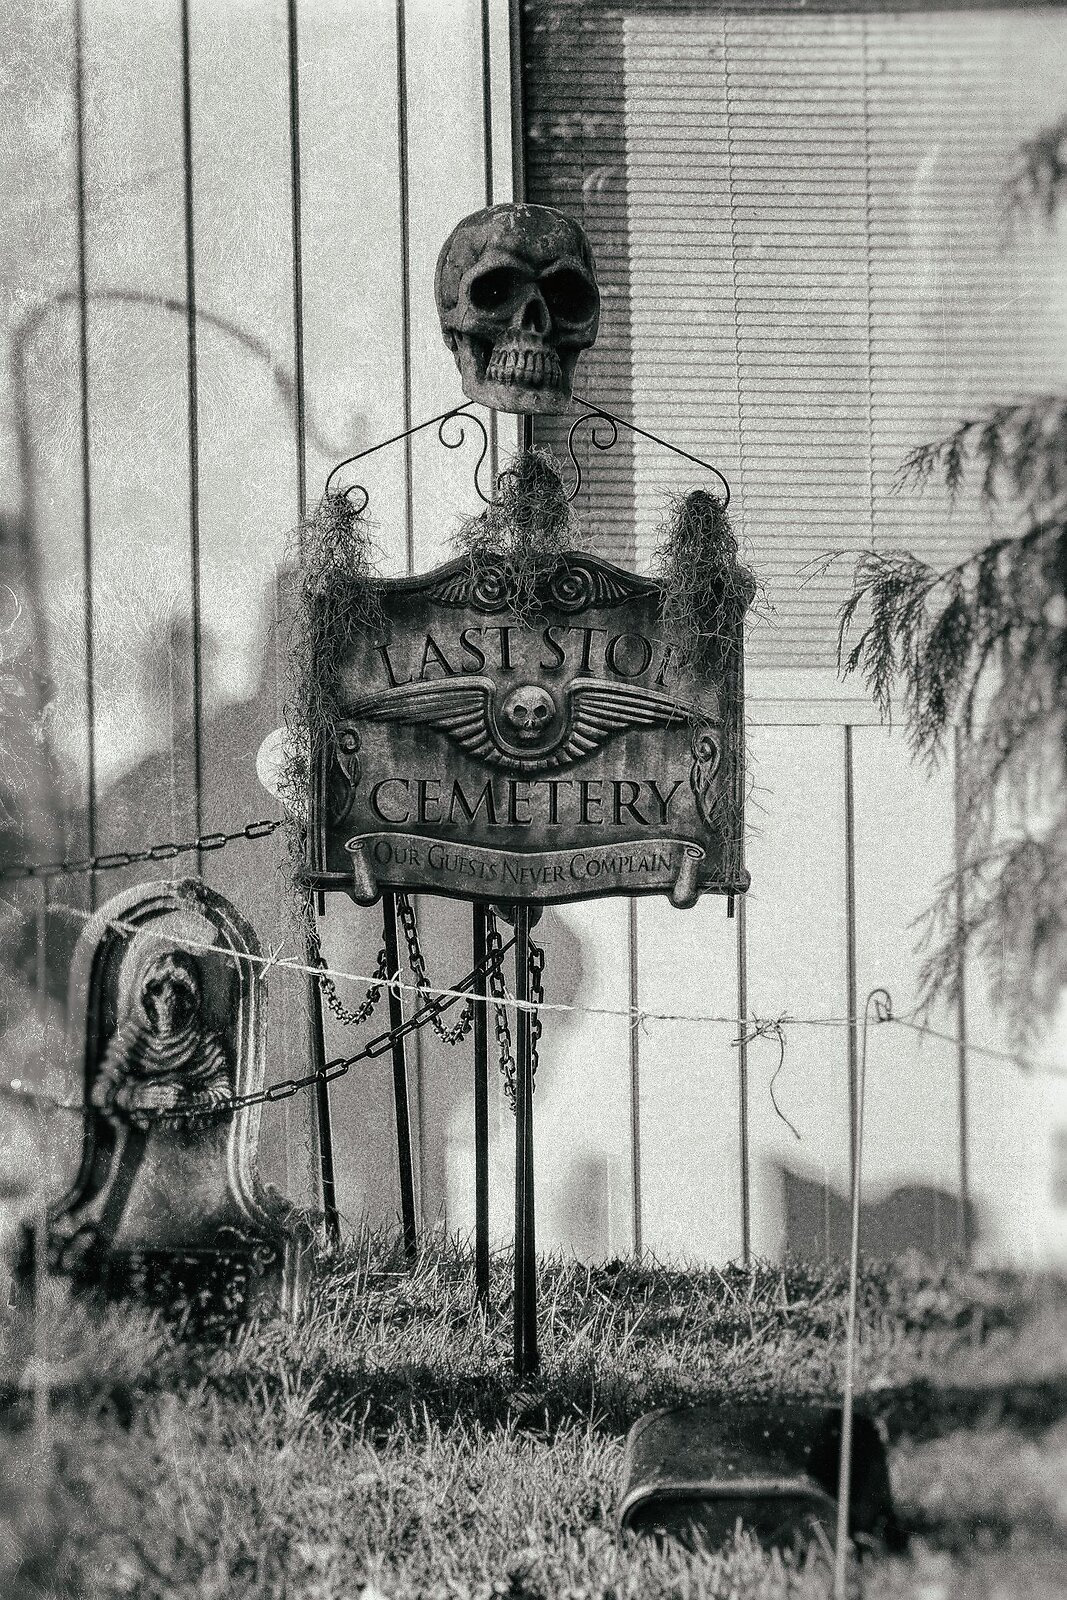 10-13-2020_noebixby_halloween_XT030637_dxo_tmax3200_analogefex_wetplate4.JPG